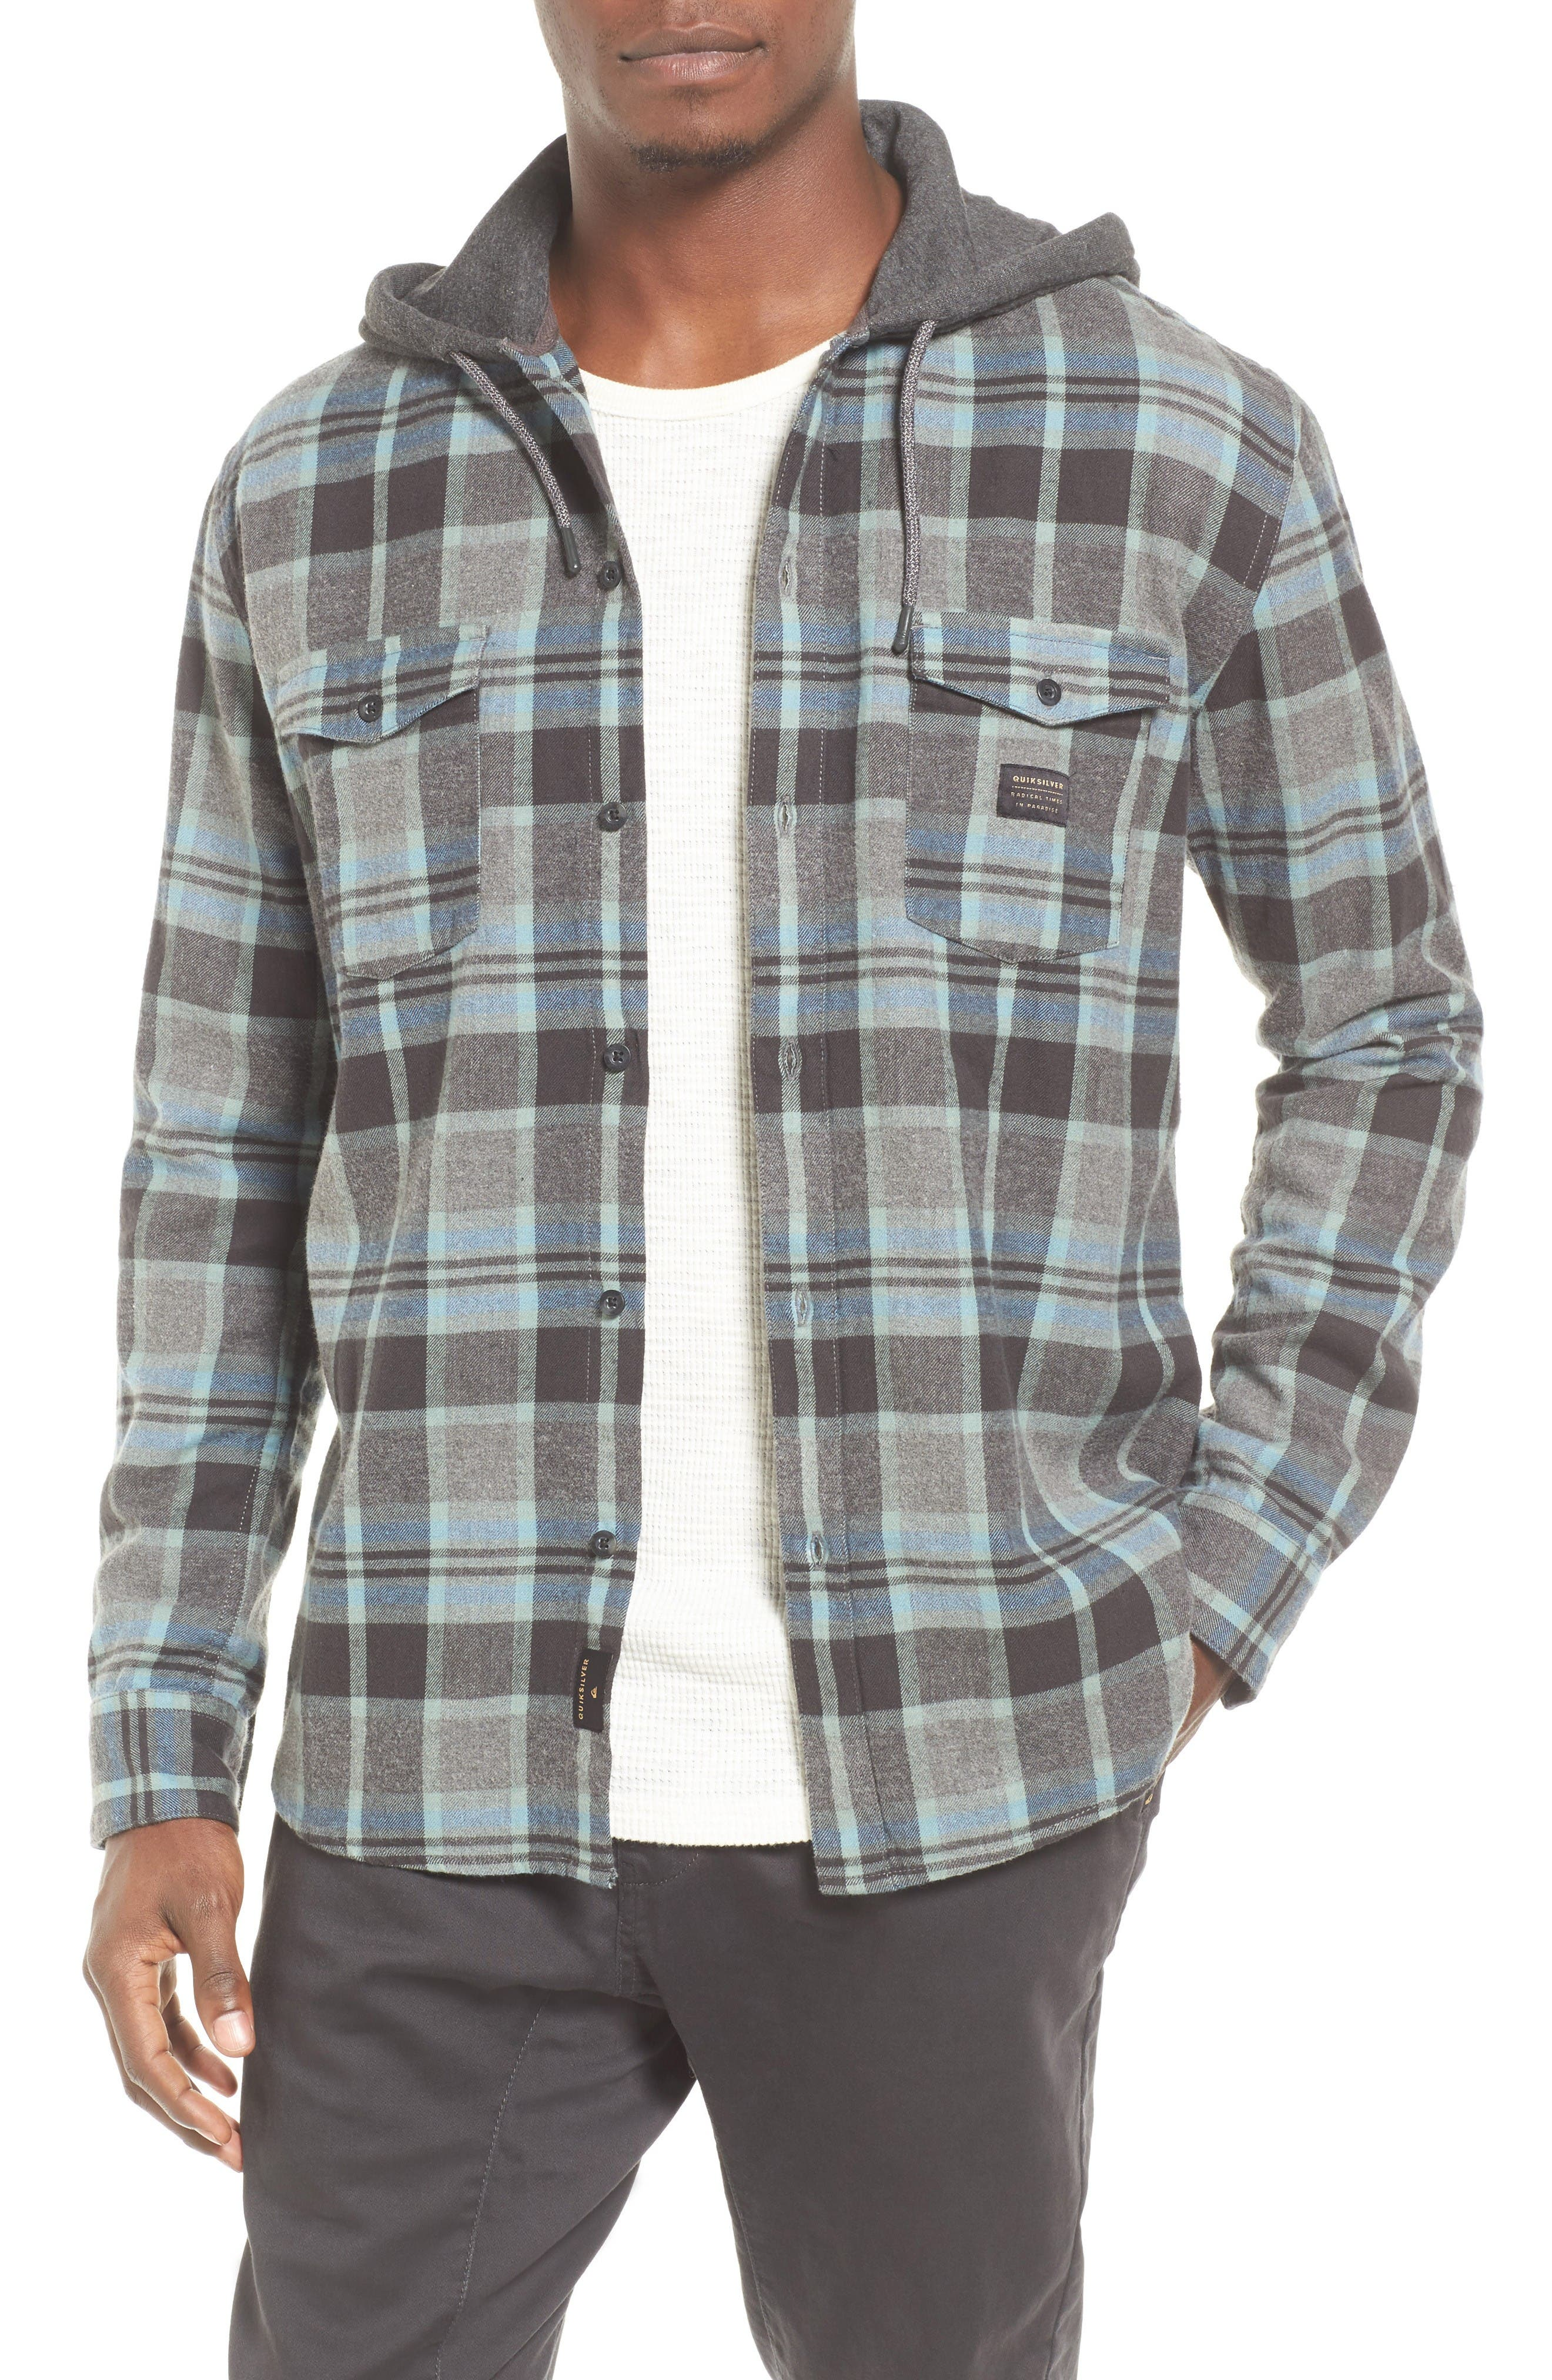 Quiksilver Fellow Player Hooded Shirt